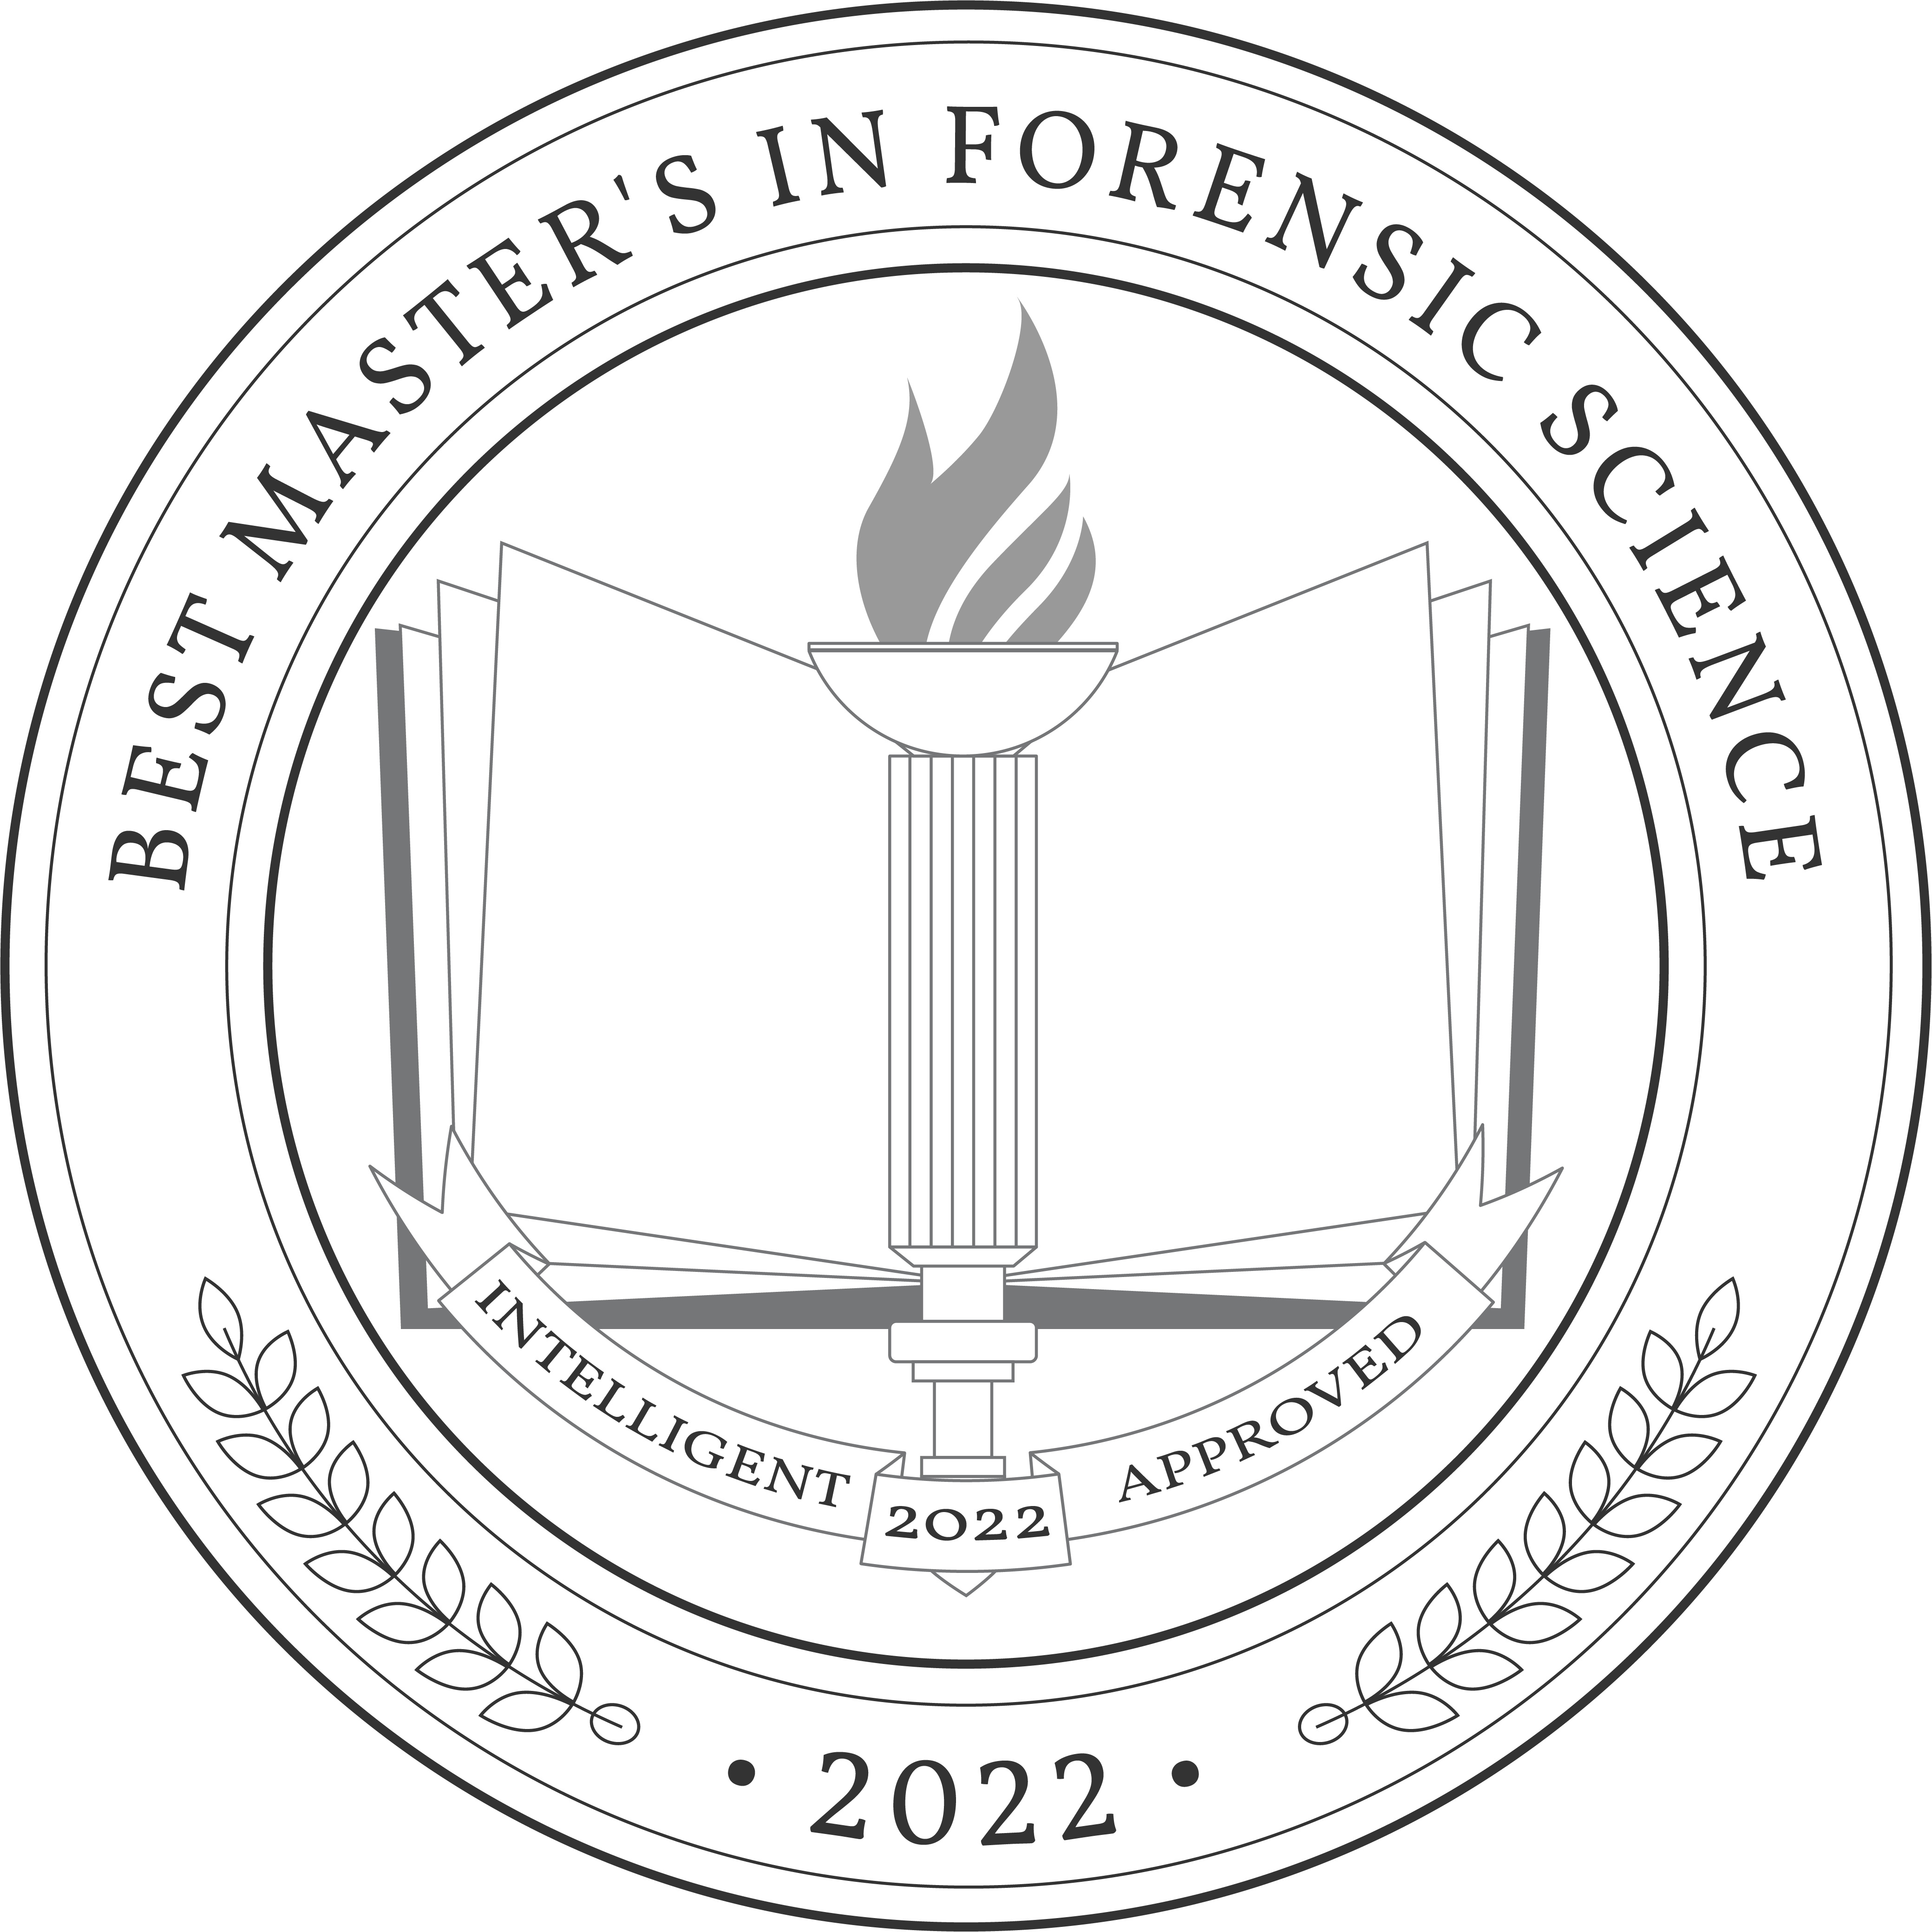 Best Master's in Forensic Science